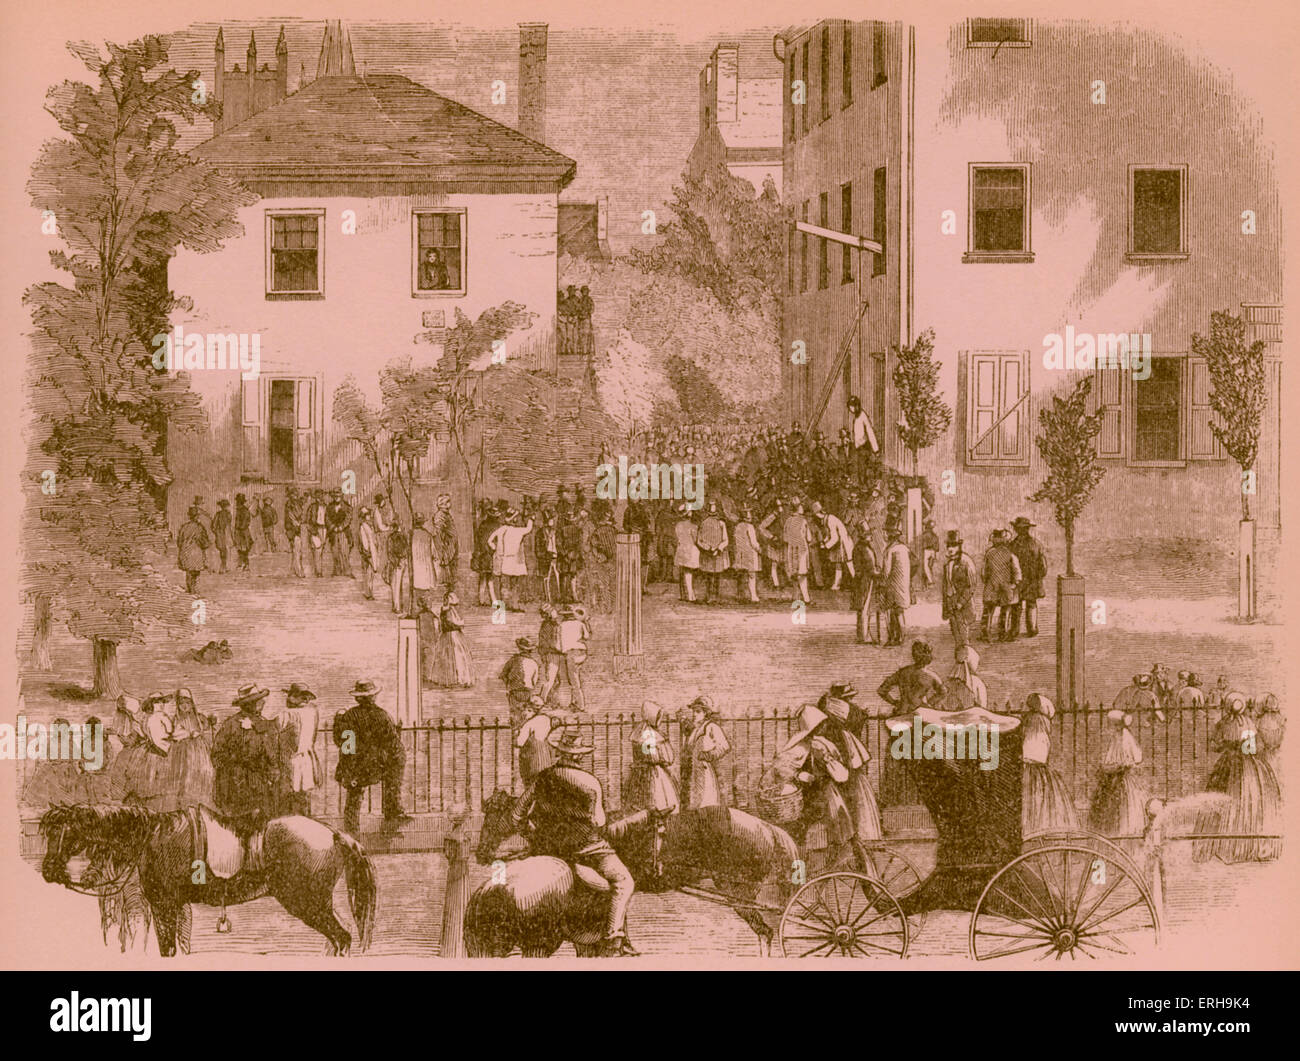 19th century lynching at a Kentucky courthouse. Artist unknown, 1860s. - Stock Image